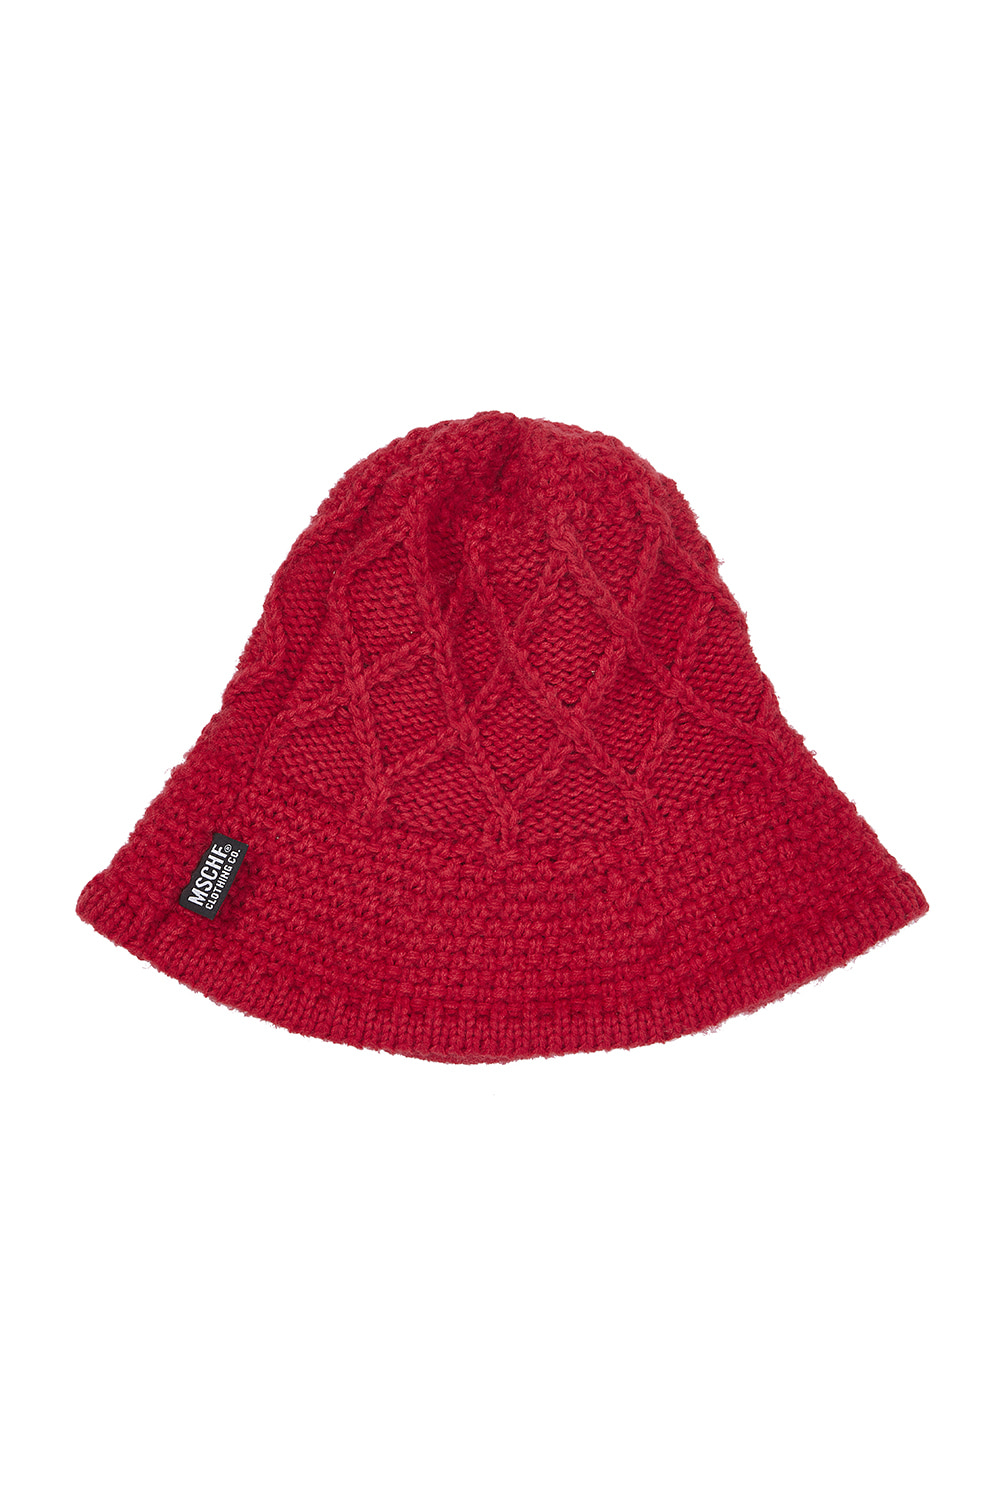 WEAVED KNIT BUCKET HAT_red